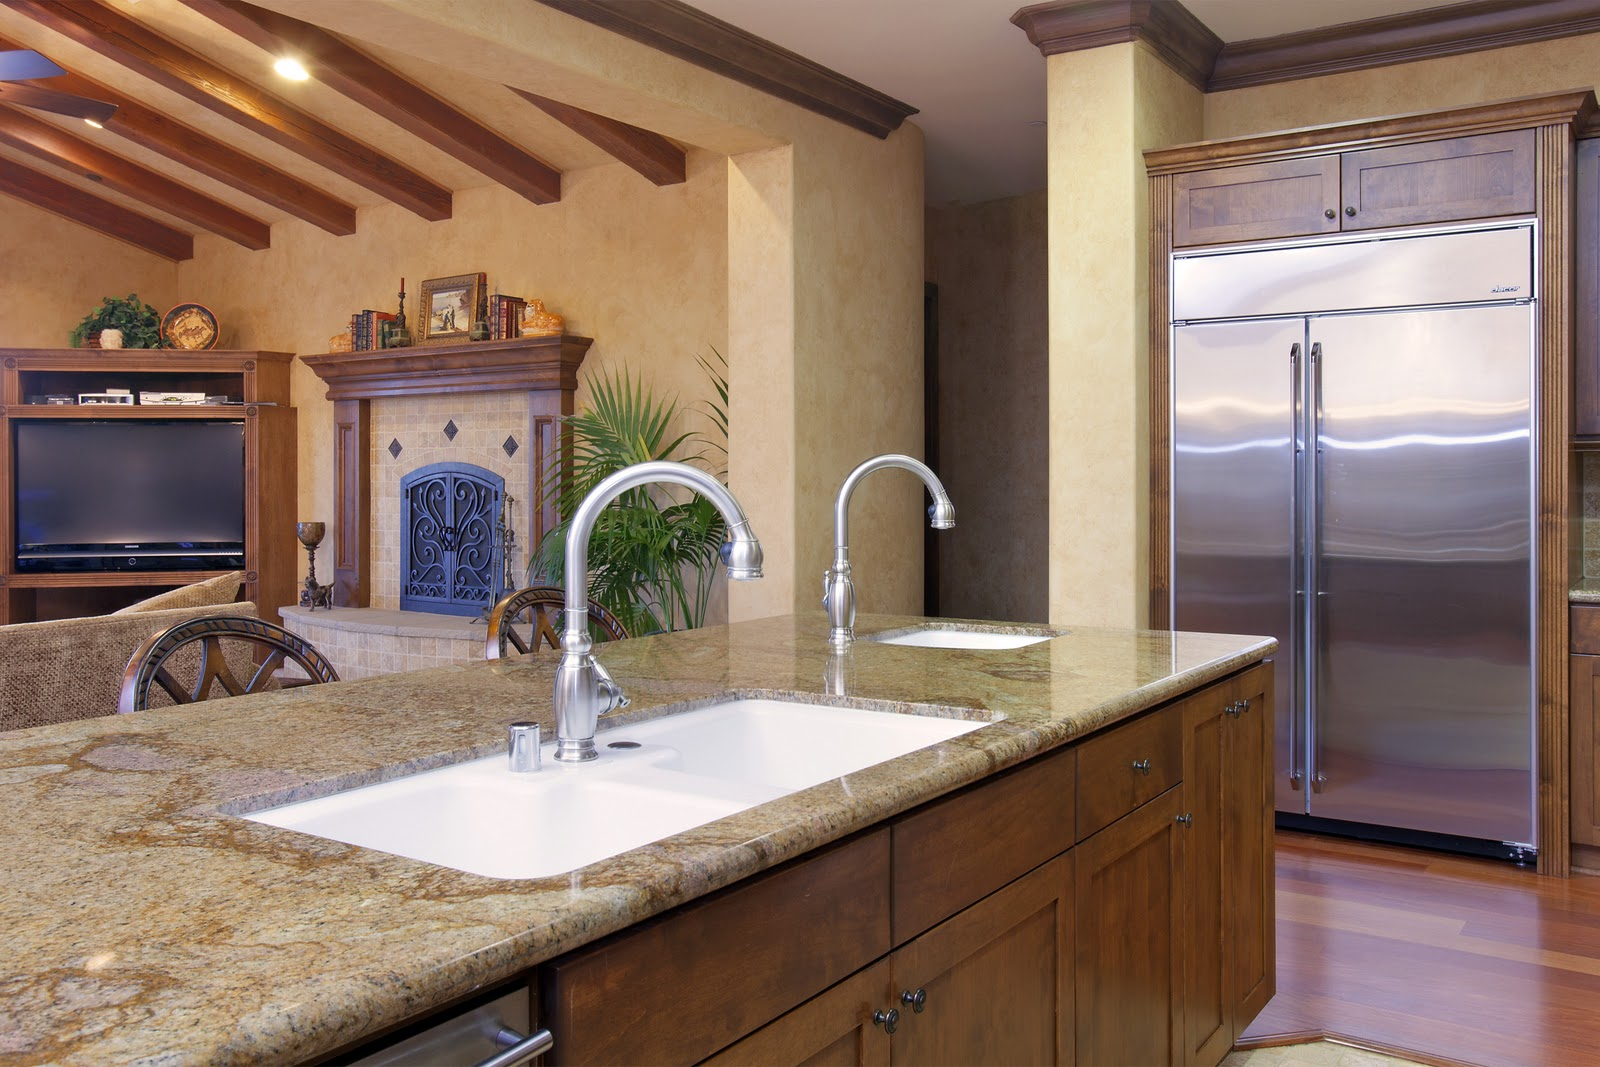 The breathtaking Brushed bronze kitchen faucet digital photography